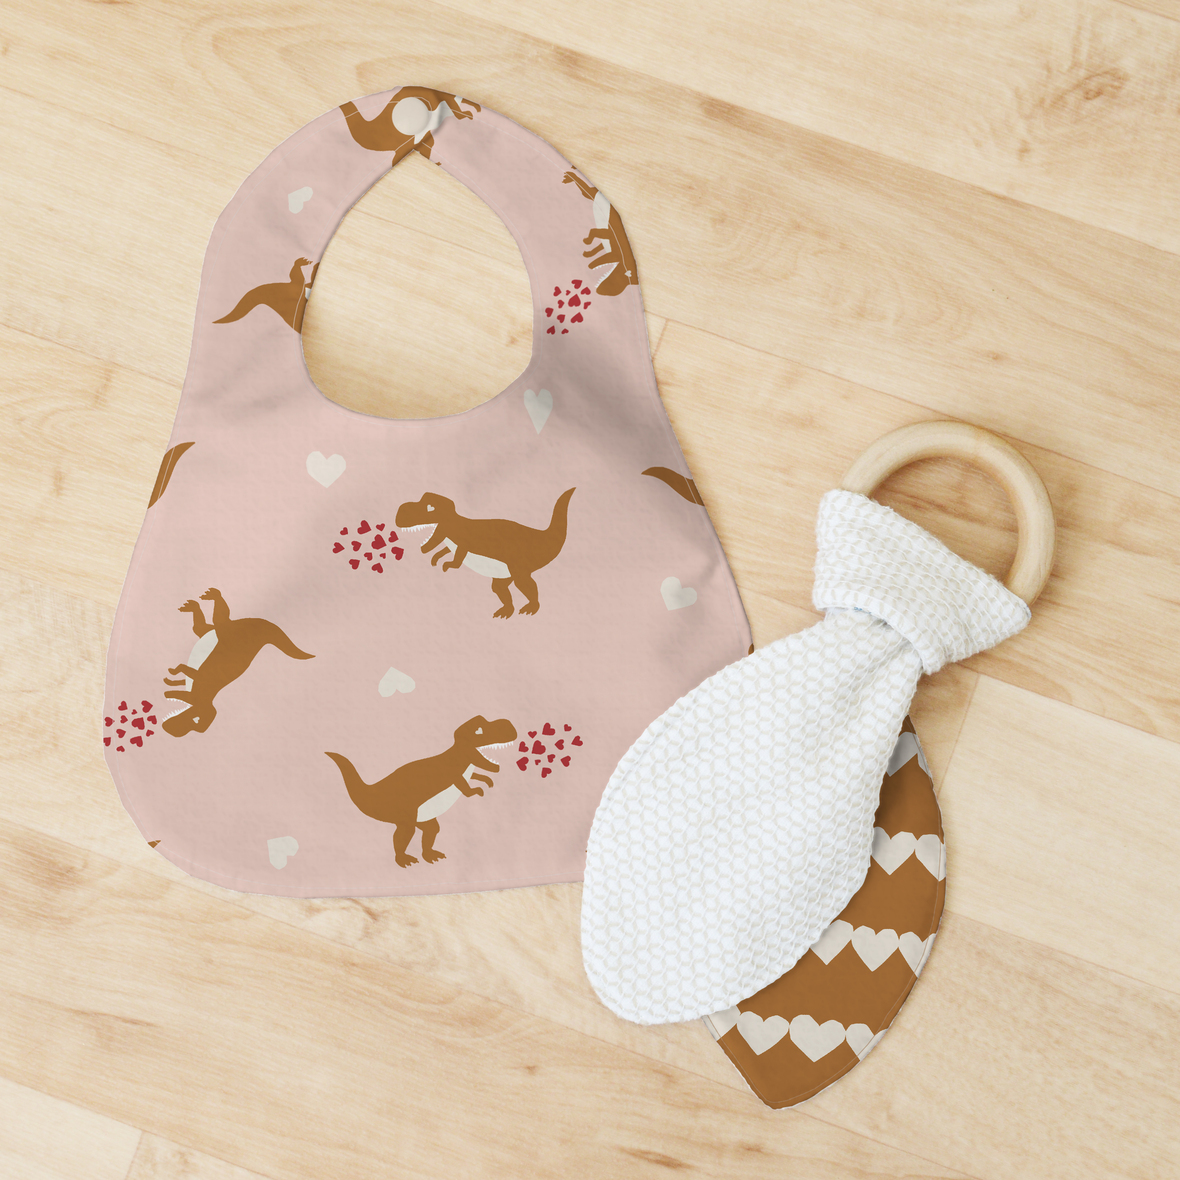 Bib and Teether 2